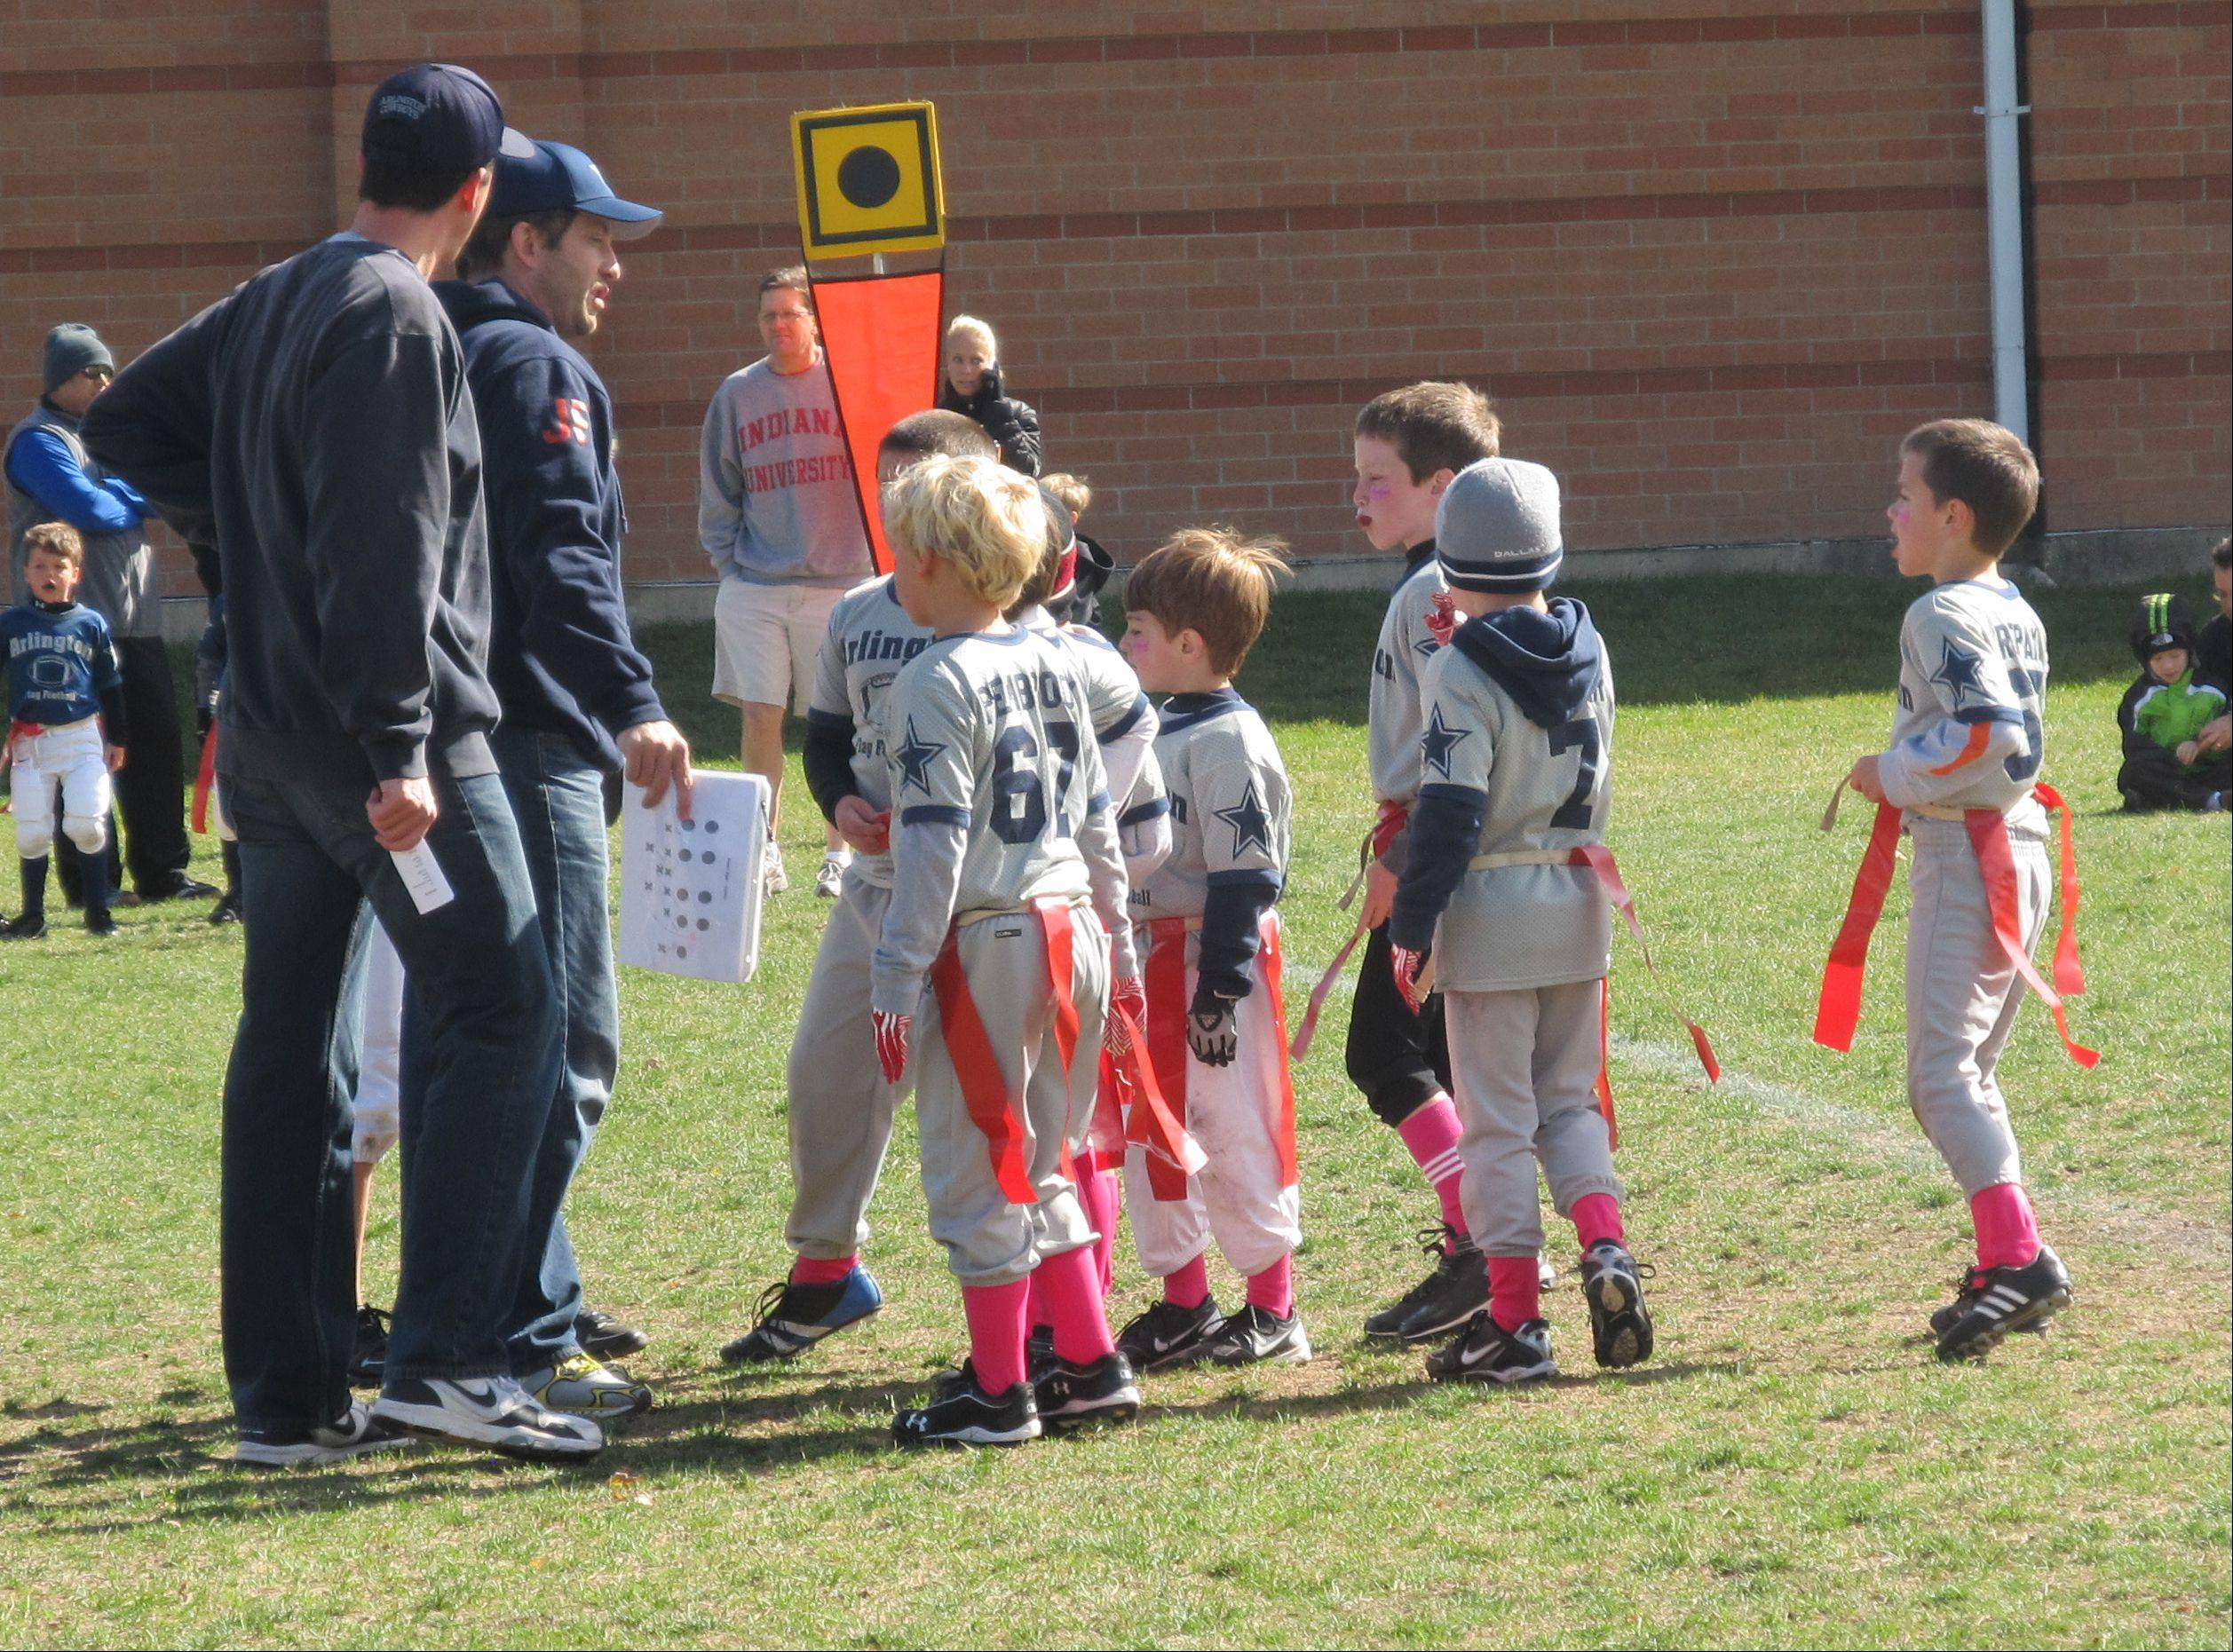 First- and second-graders play flag football with the Arlington Cowboys league Saturday in Arlington Heights.